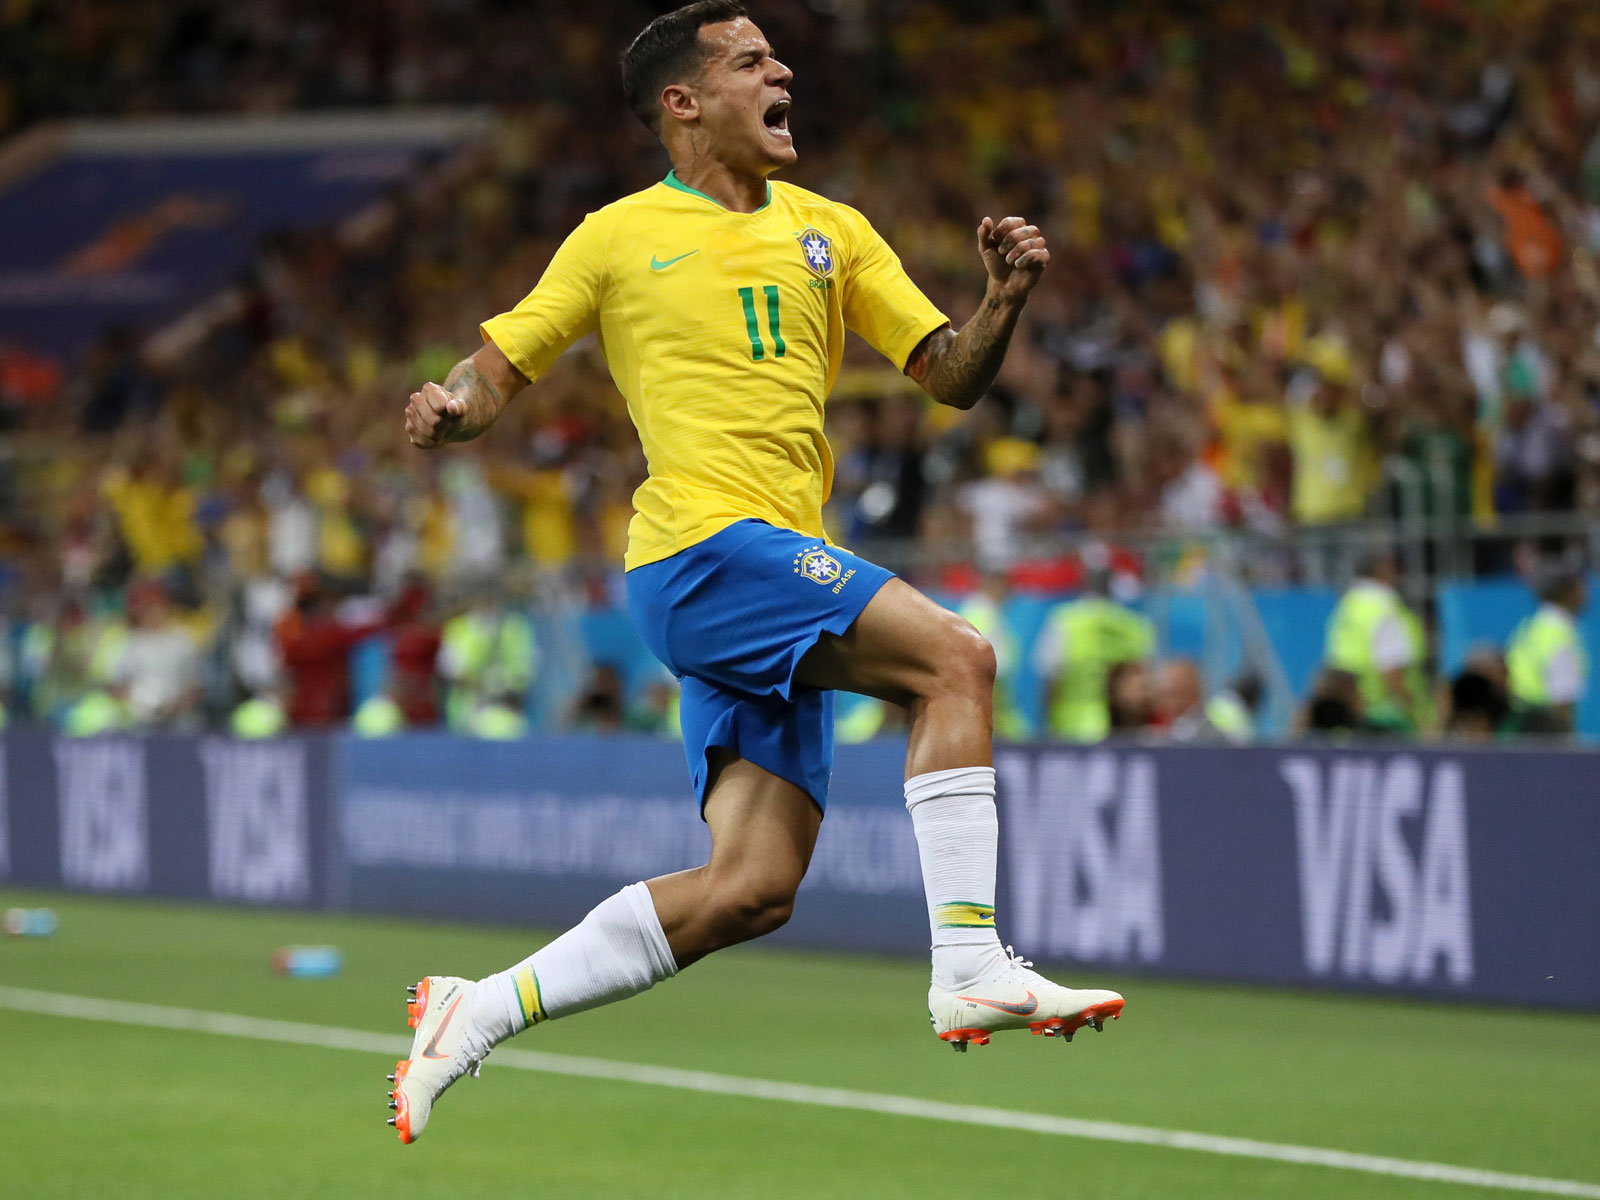 Philippe Coutinho starred for Brazil at the World Cup